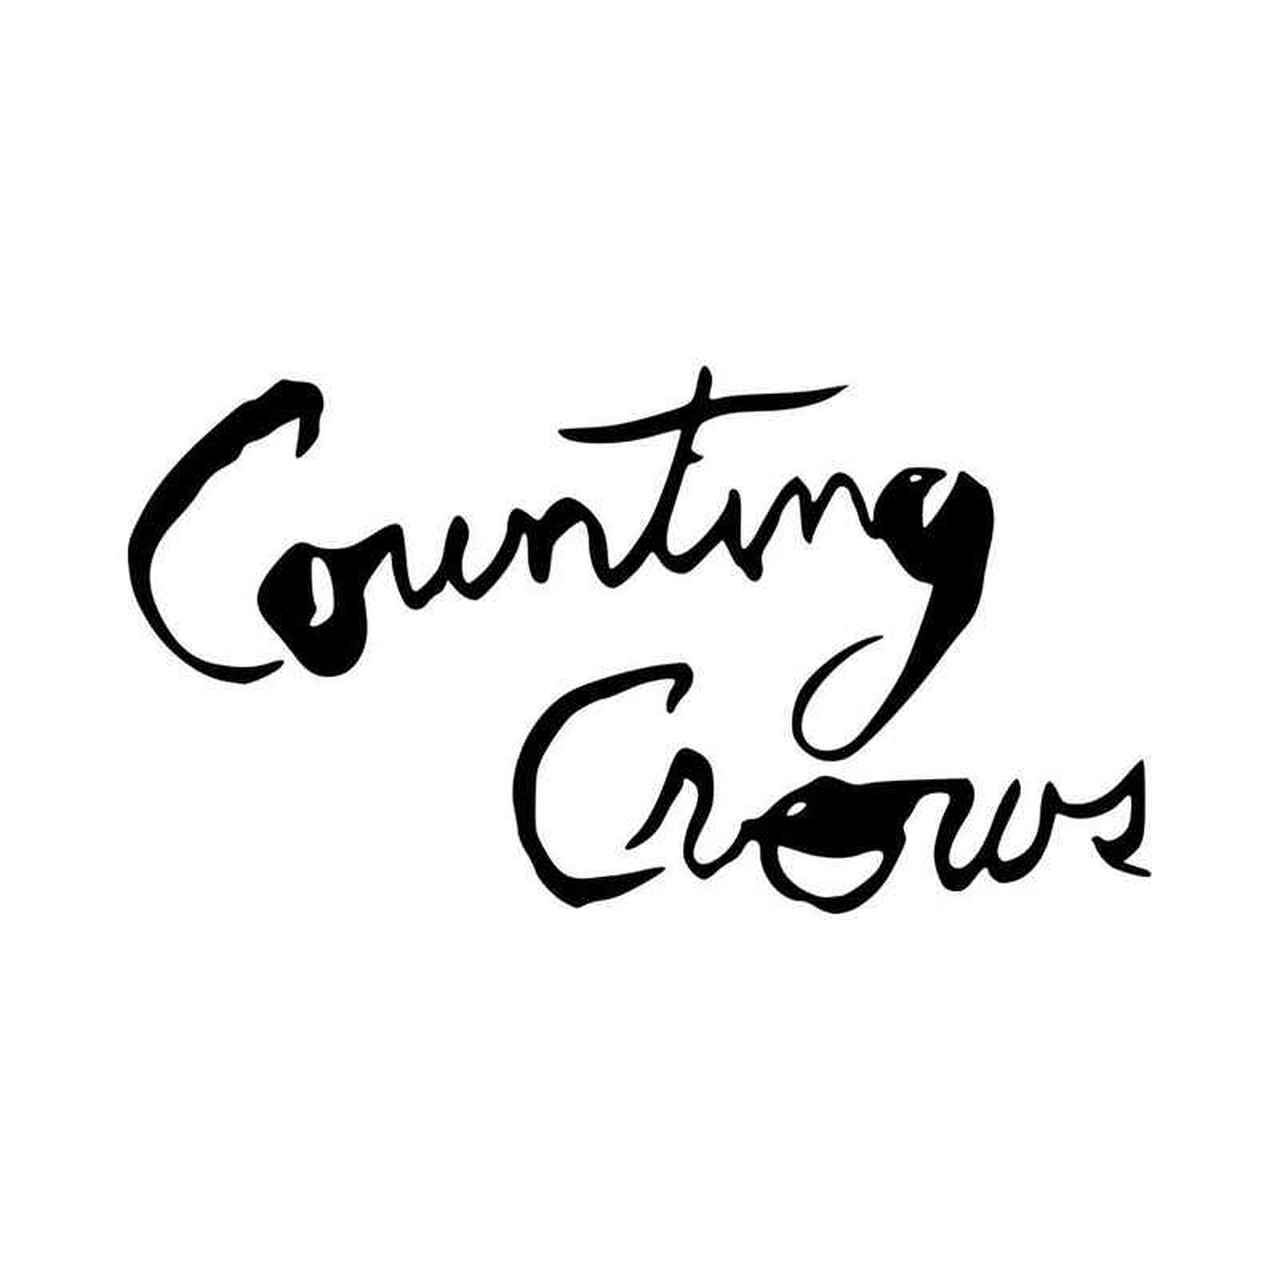 Counting Crows logo